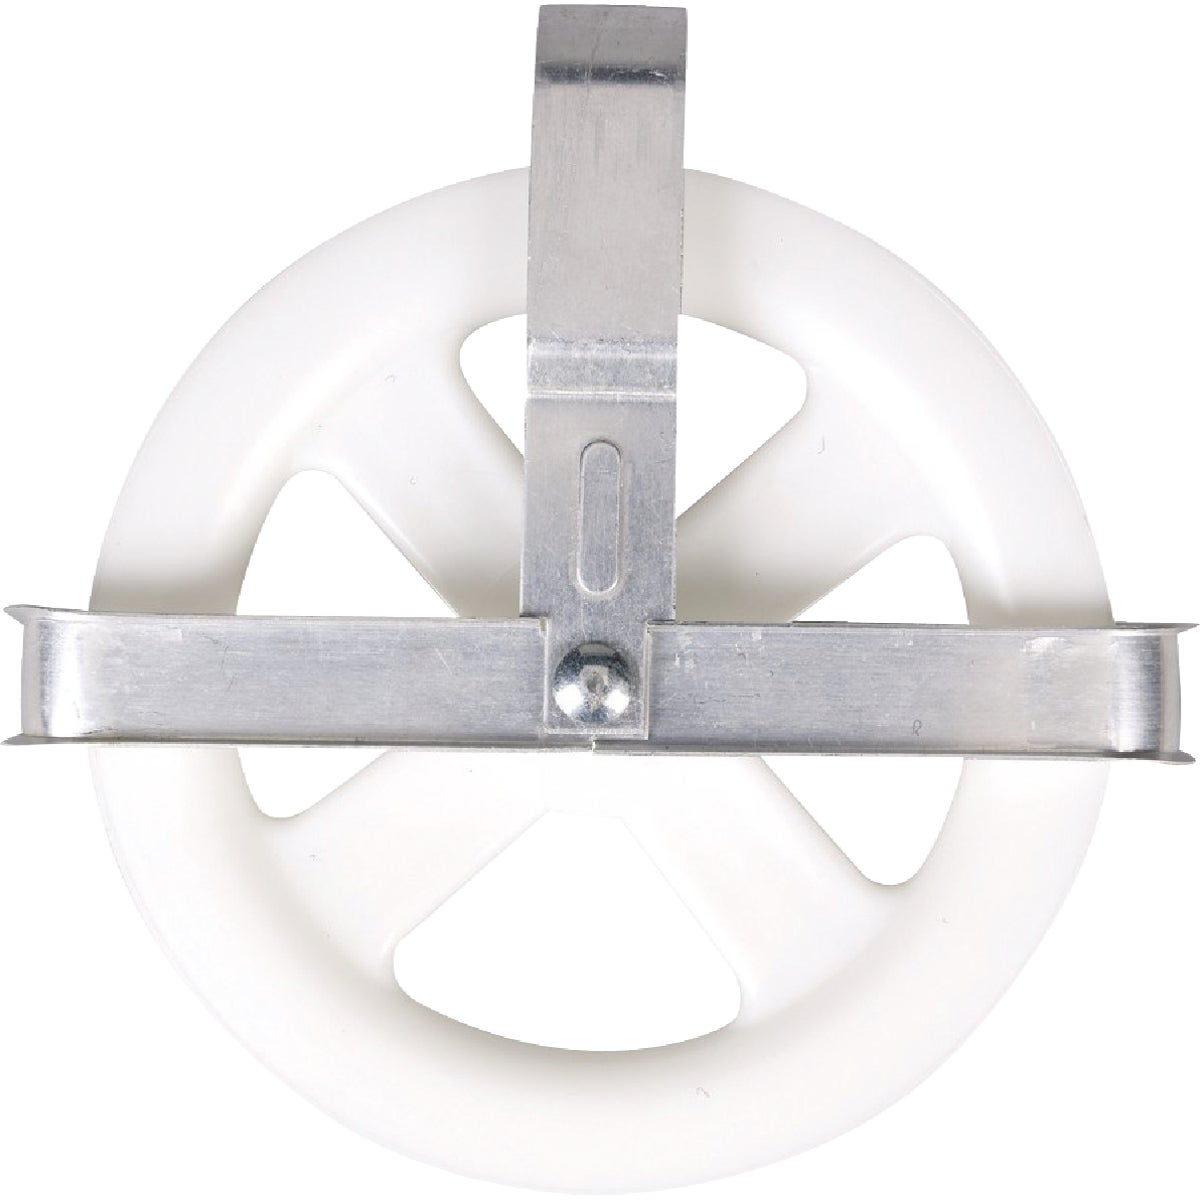 "5"" CLOTHESLINE PULLEY - 250 by Household Essentials"